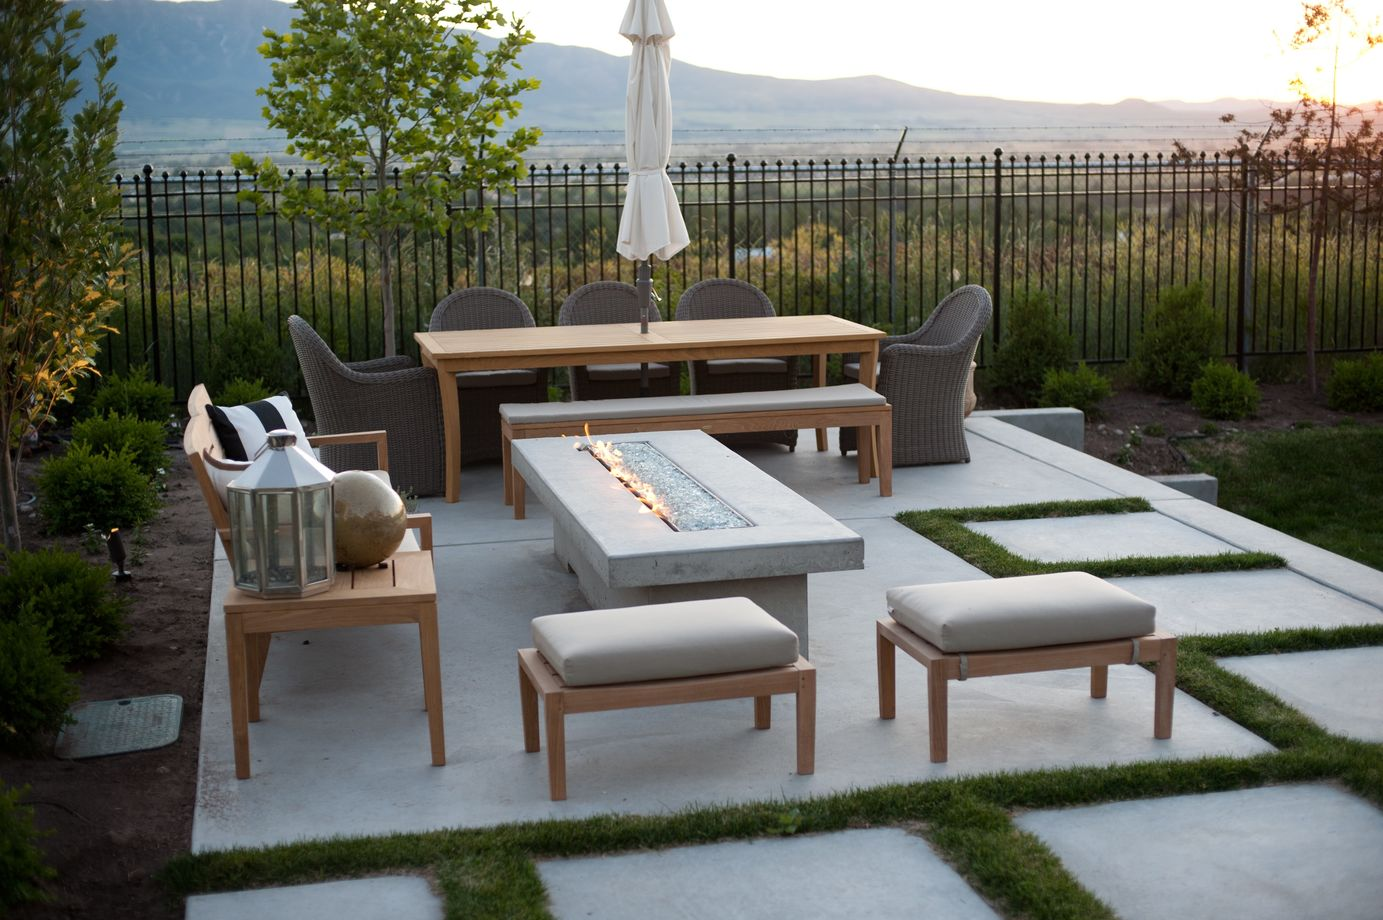 Outdoor living 8 ideas to get the most out of your space for Outdoor living patio furniture